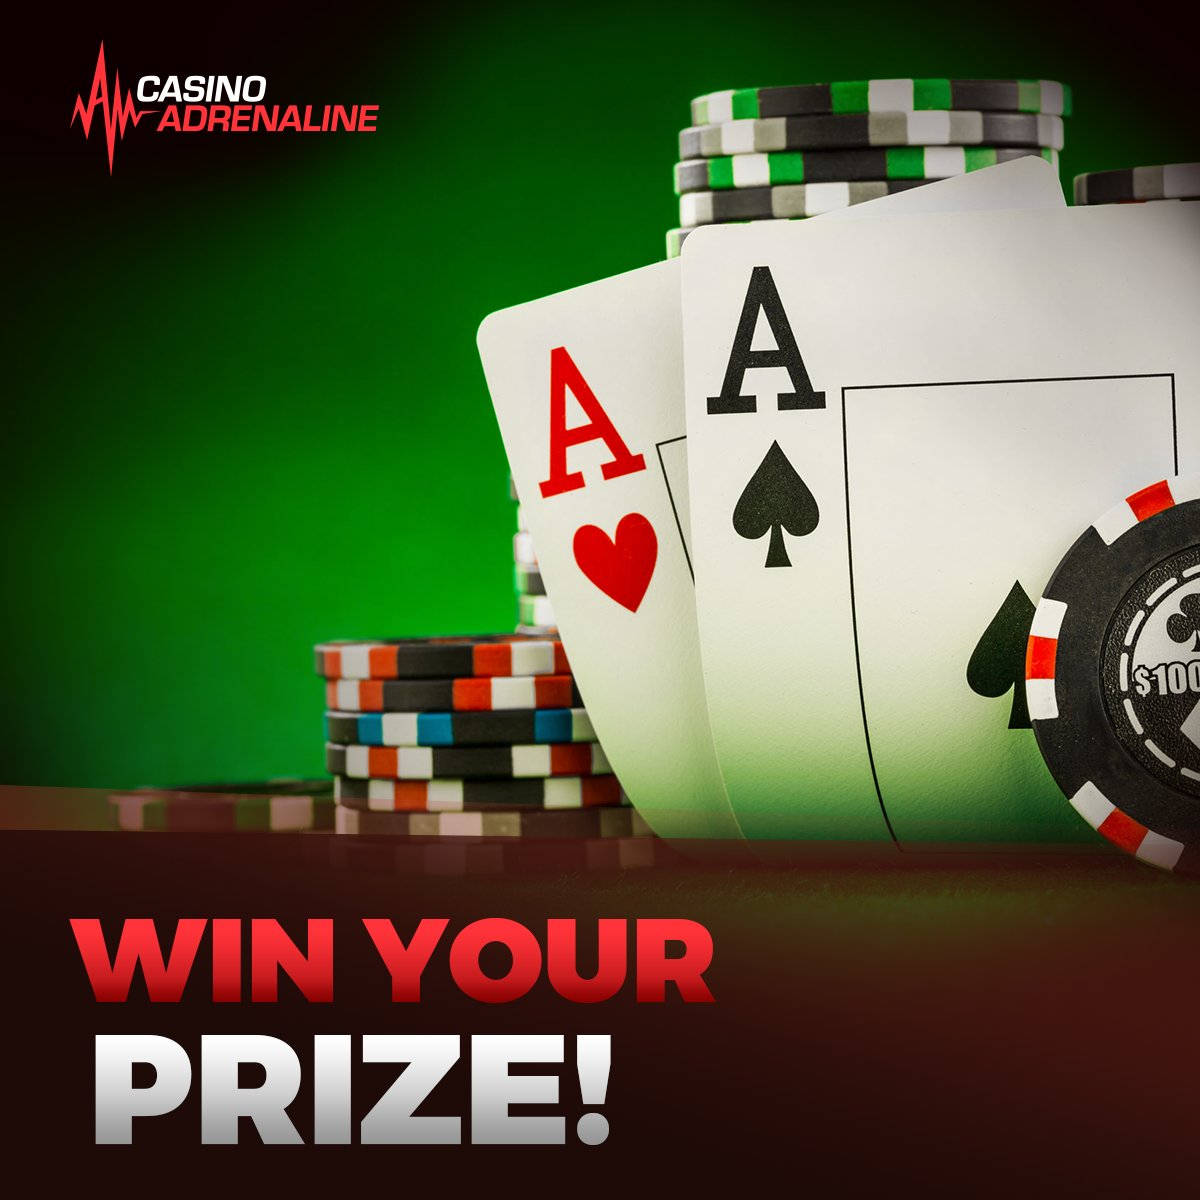 test Twitter Media - Put all your cards on the table, win your prize! 🃏♣ #CasinoAdrenaline #playthegame #casinogames Try it now: https://t.co/qTR5lkfpMt https://t.co/qgBPinPyNJ